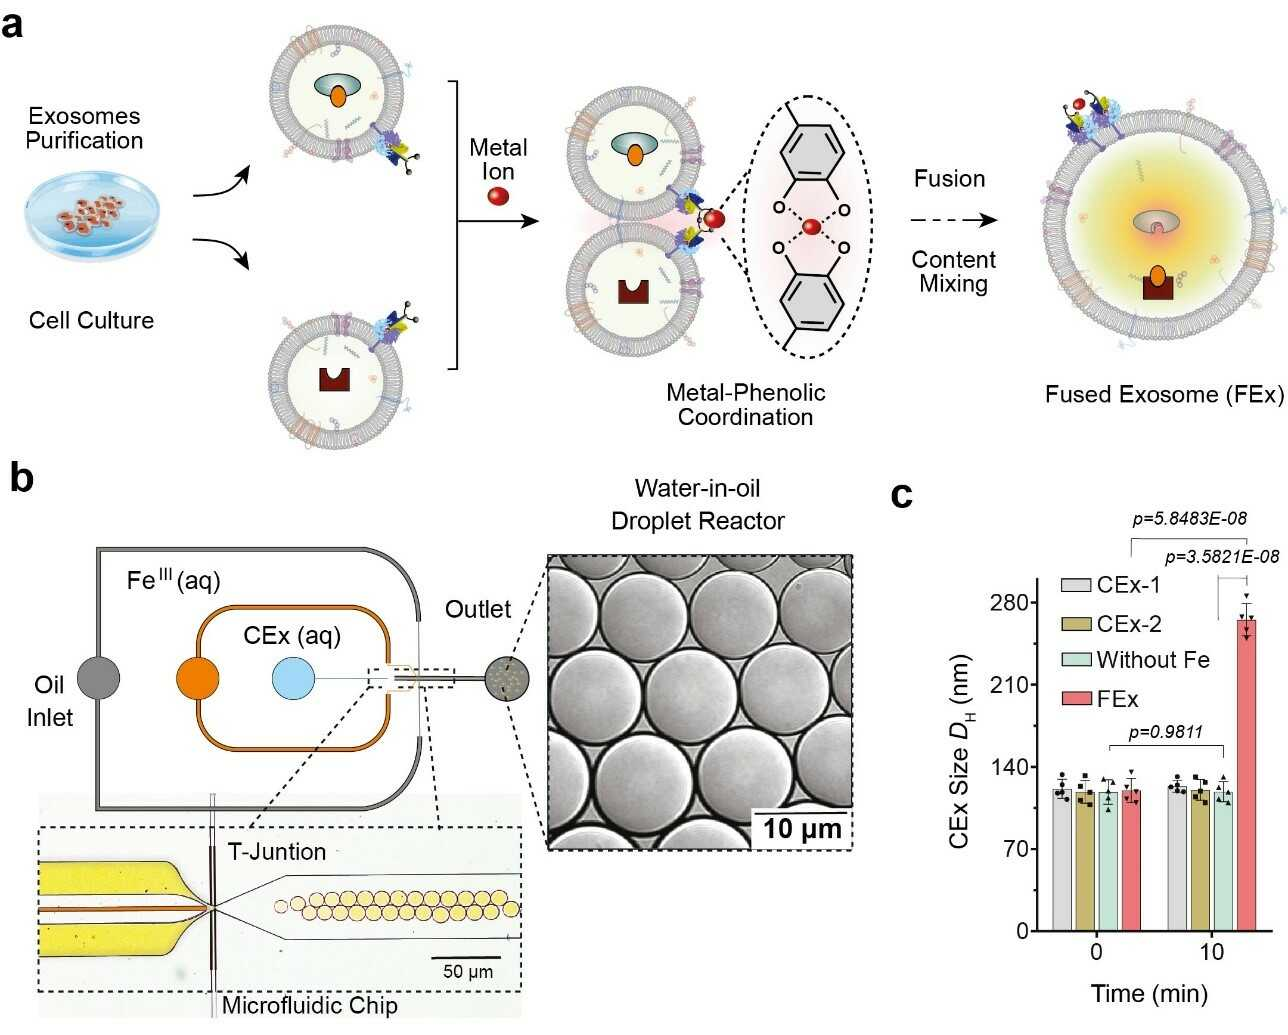 Figure 1. (a) Fe3+ ion triggers membrane fusion in exosomes tailored with catechol (CEx). The formation of a metal-catechol complex brings the exosomes into close proximity and enables fusion. Different reactants in each exosome are then encapsulated together, promoting mixing and triggering reactions inside the fused exosomes (FEx). (b) The microfluidic device designed for generating water-in-oil droplet reactors at the flow-focusing junction. The two aqueous phases (CEx and metal salt) meet and are delivered into the oil stream (1% surfactant PFPE-PEG in FC-40) to break the liquid into droplets. (c) Average size of unfused exosomes (CEx-1: 121 ± 8 nm, CEx-2: 123 ± 5 nm) and fused exosomes (FEx: 265 ± 14 nm).